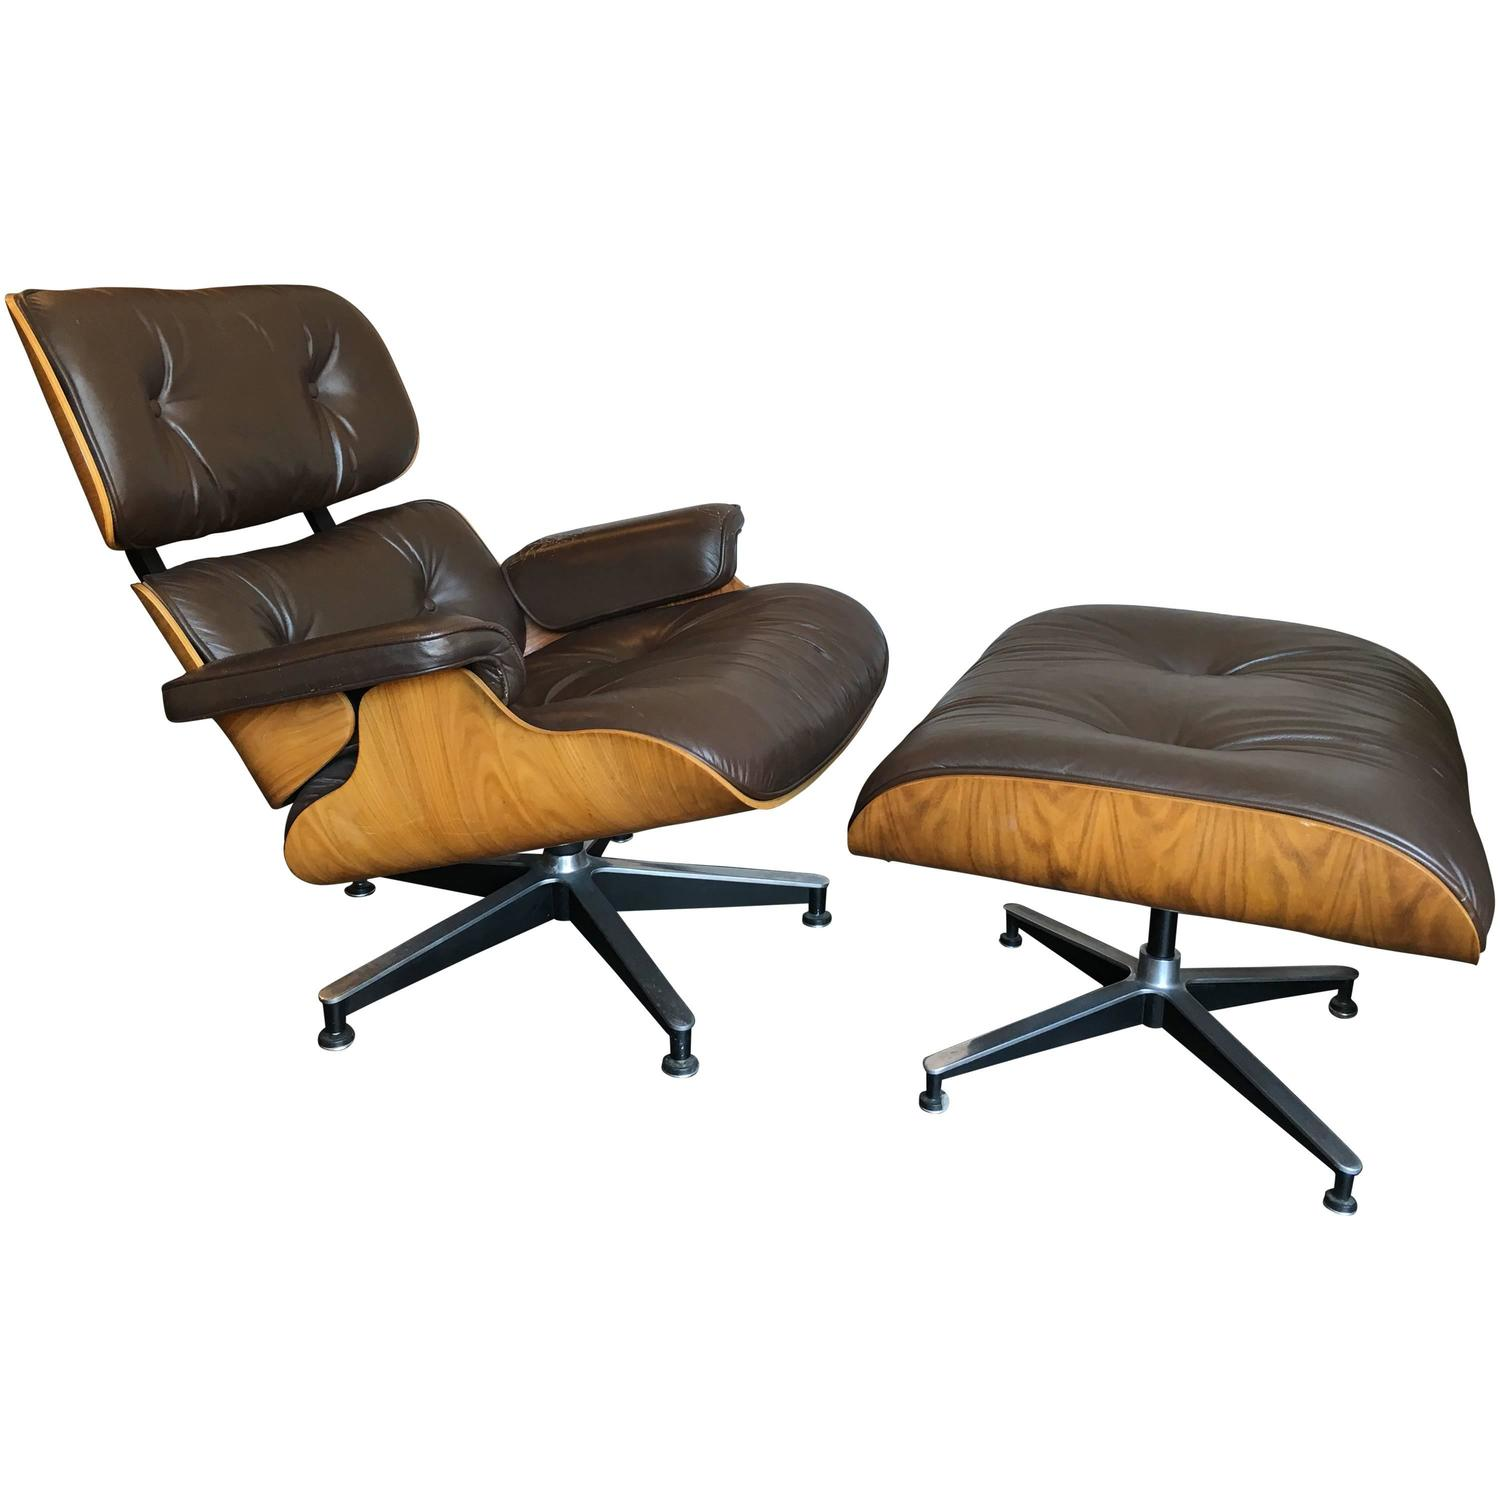 charles and ray eames lounge chair and ottoman by herman miller at 1stdibs. Black Bedroom Furniture Sets. Home Design Ideas